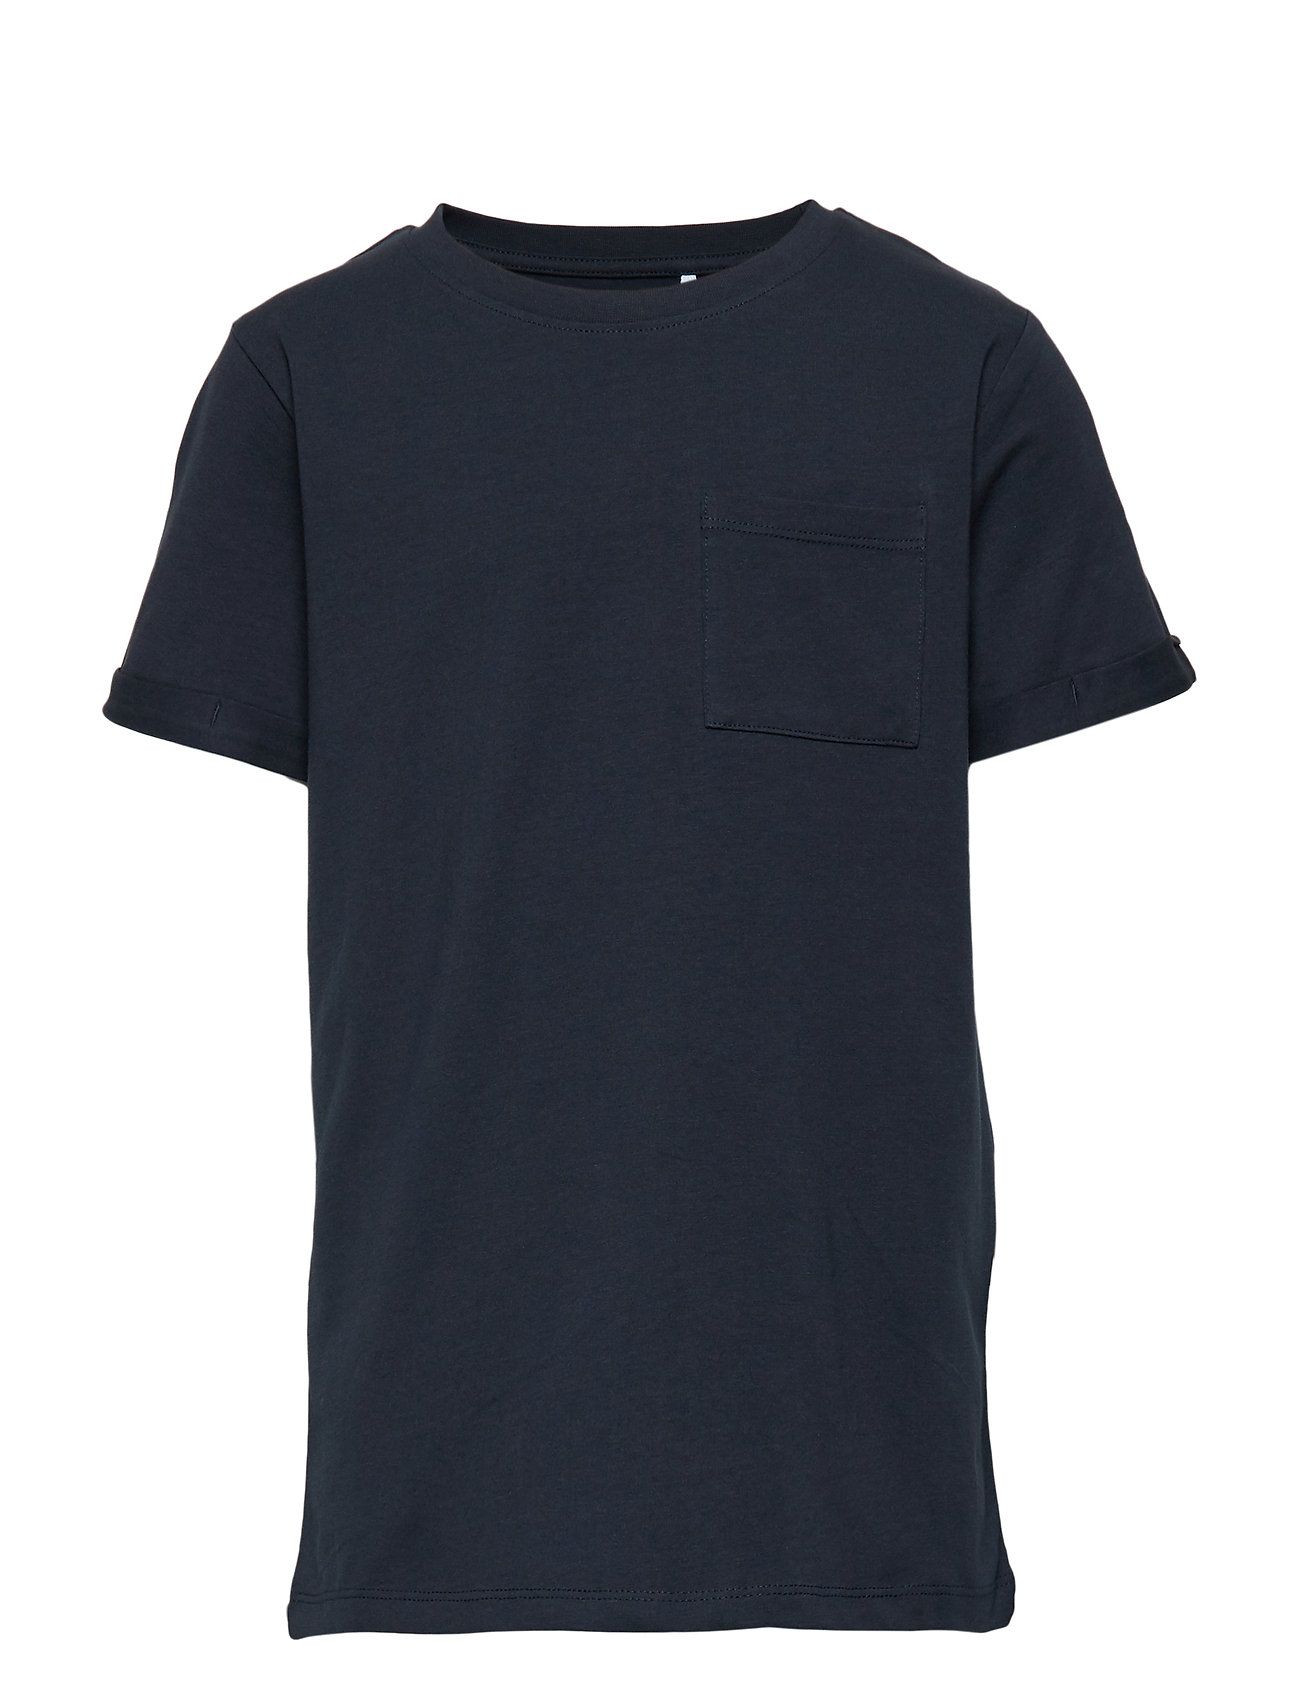 Image of Nkmvester Ss Top Noos T-shirt Blå NAME IT (2923023759)